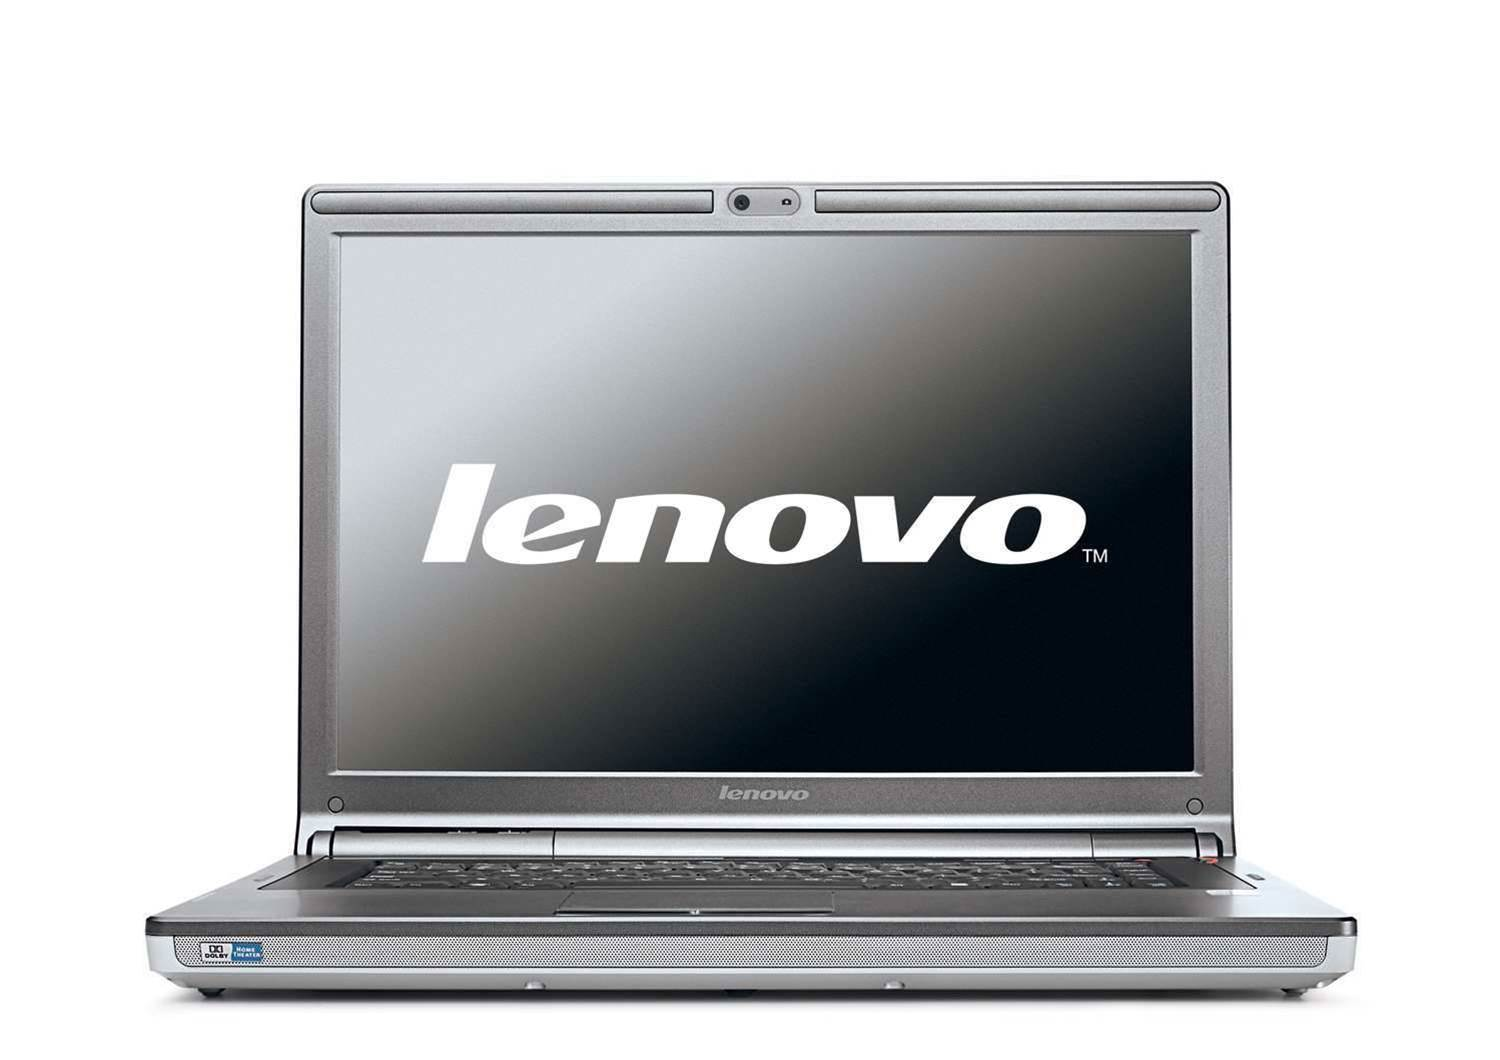 Lenovo PC shipments soar in Q4